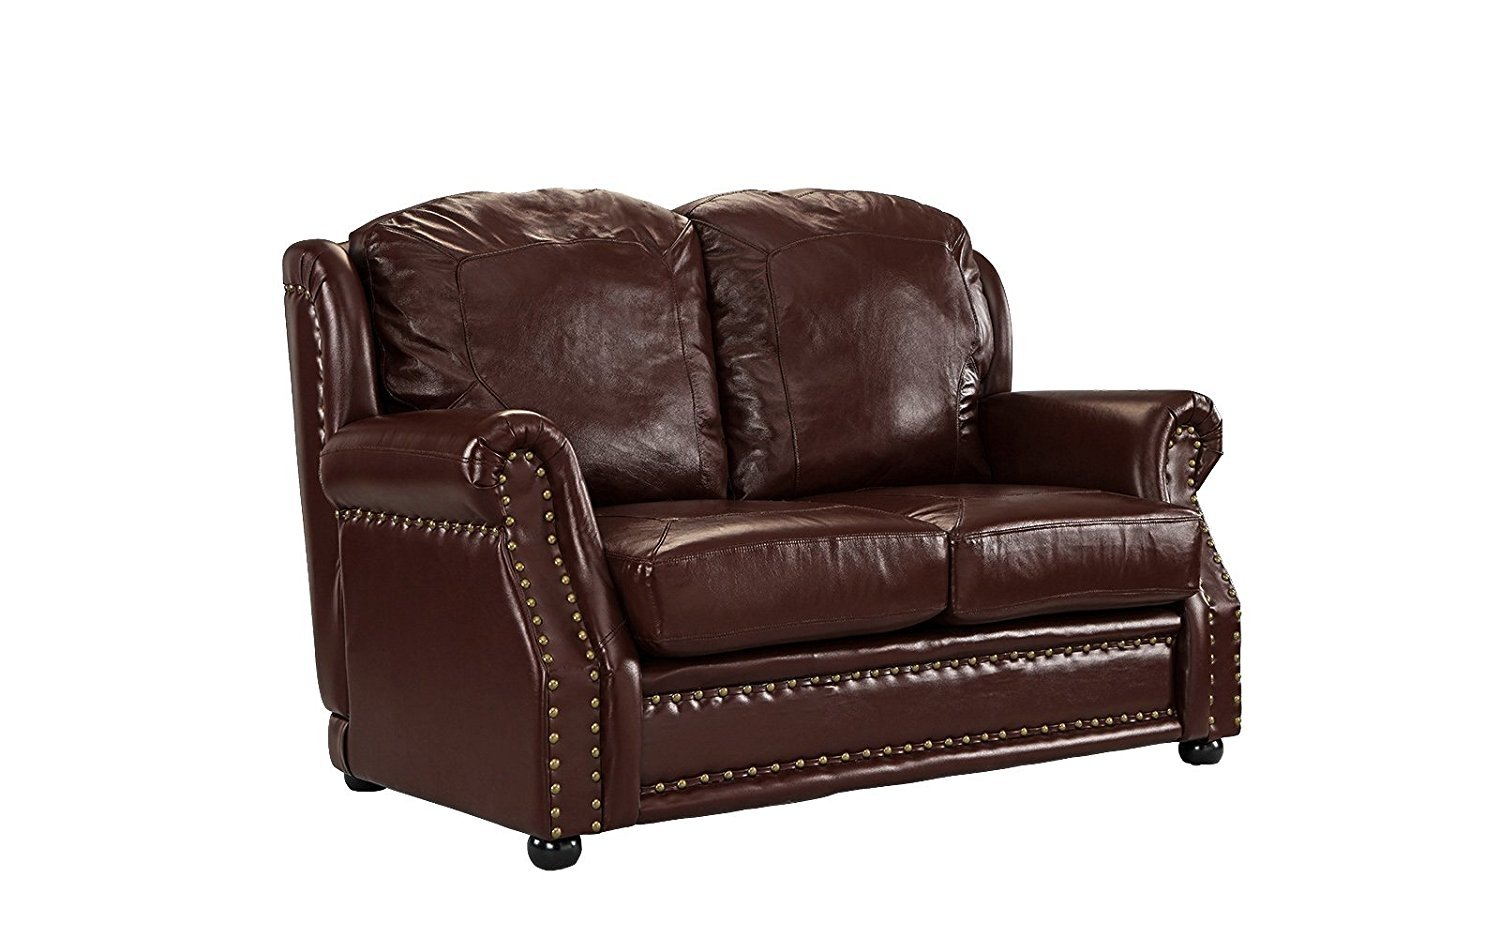 Leather Sofa 2 Seater Dark Brown Living Room Couch Loveseat with ...